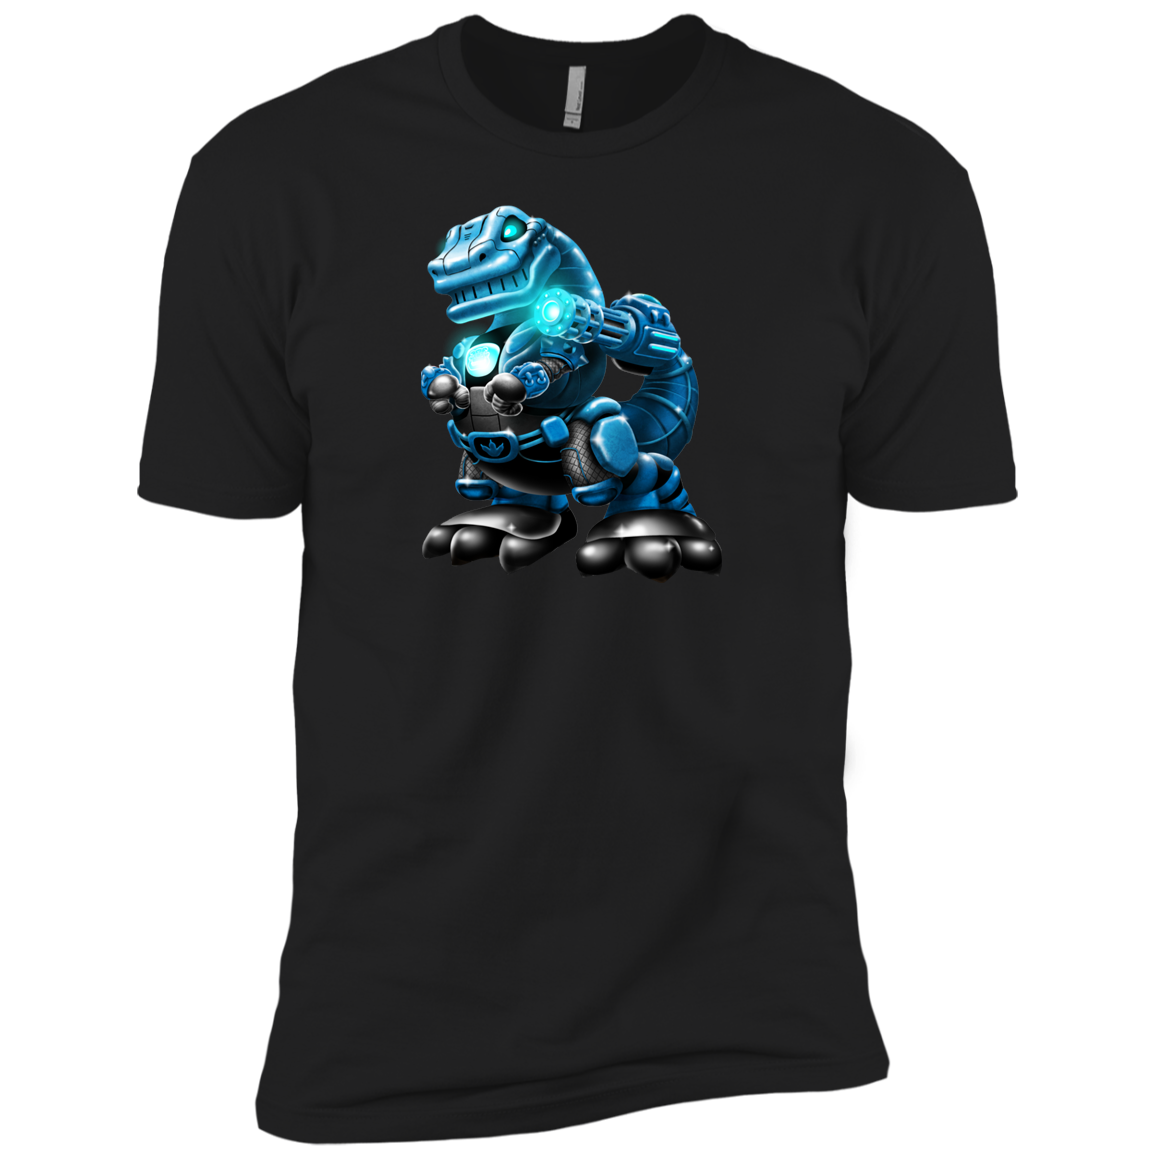 Trex Shirt for Kids